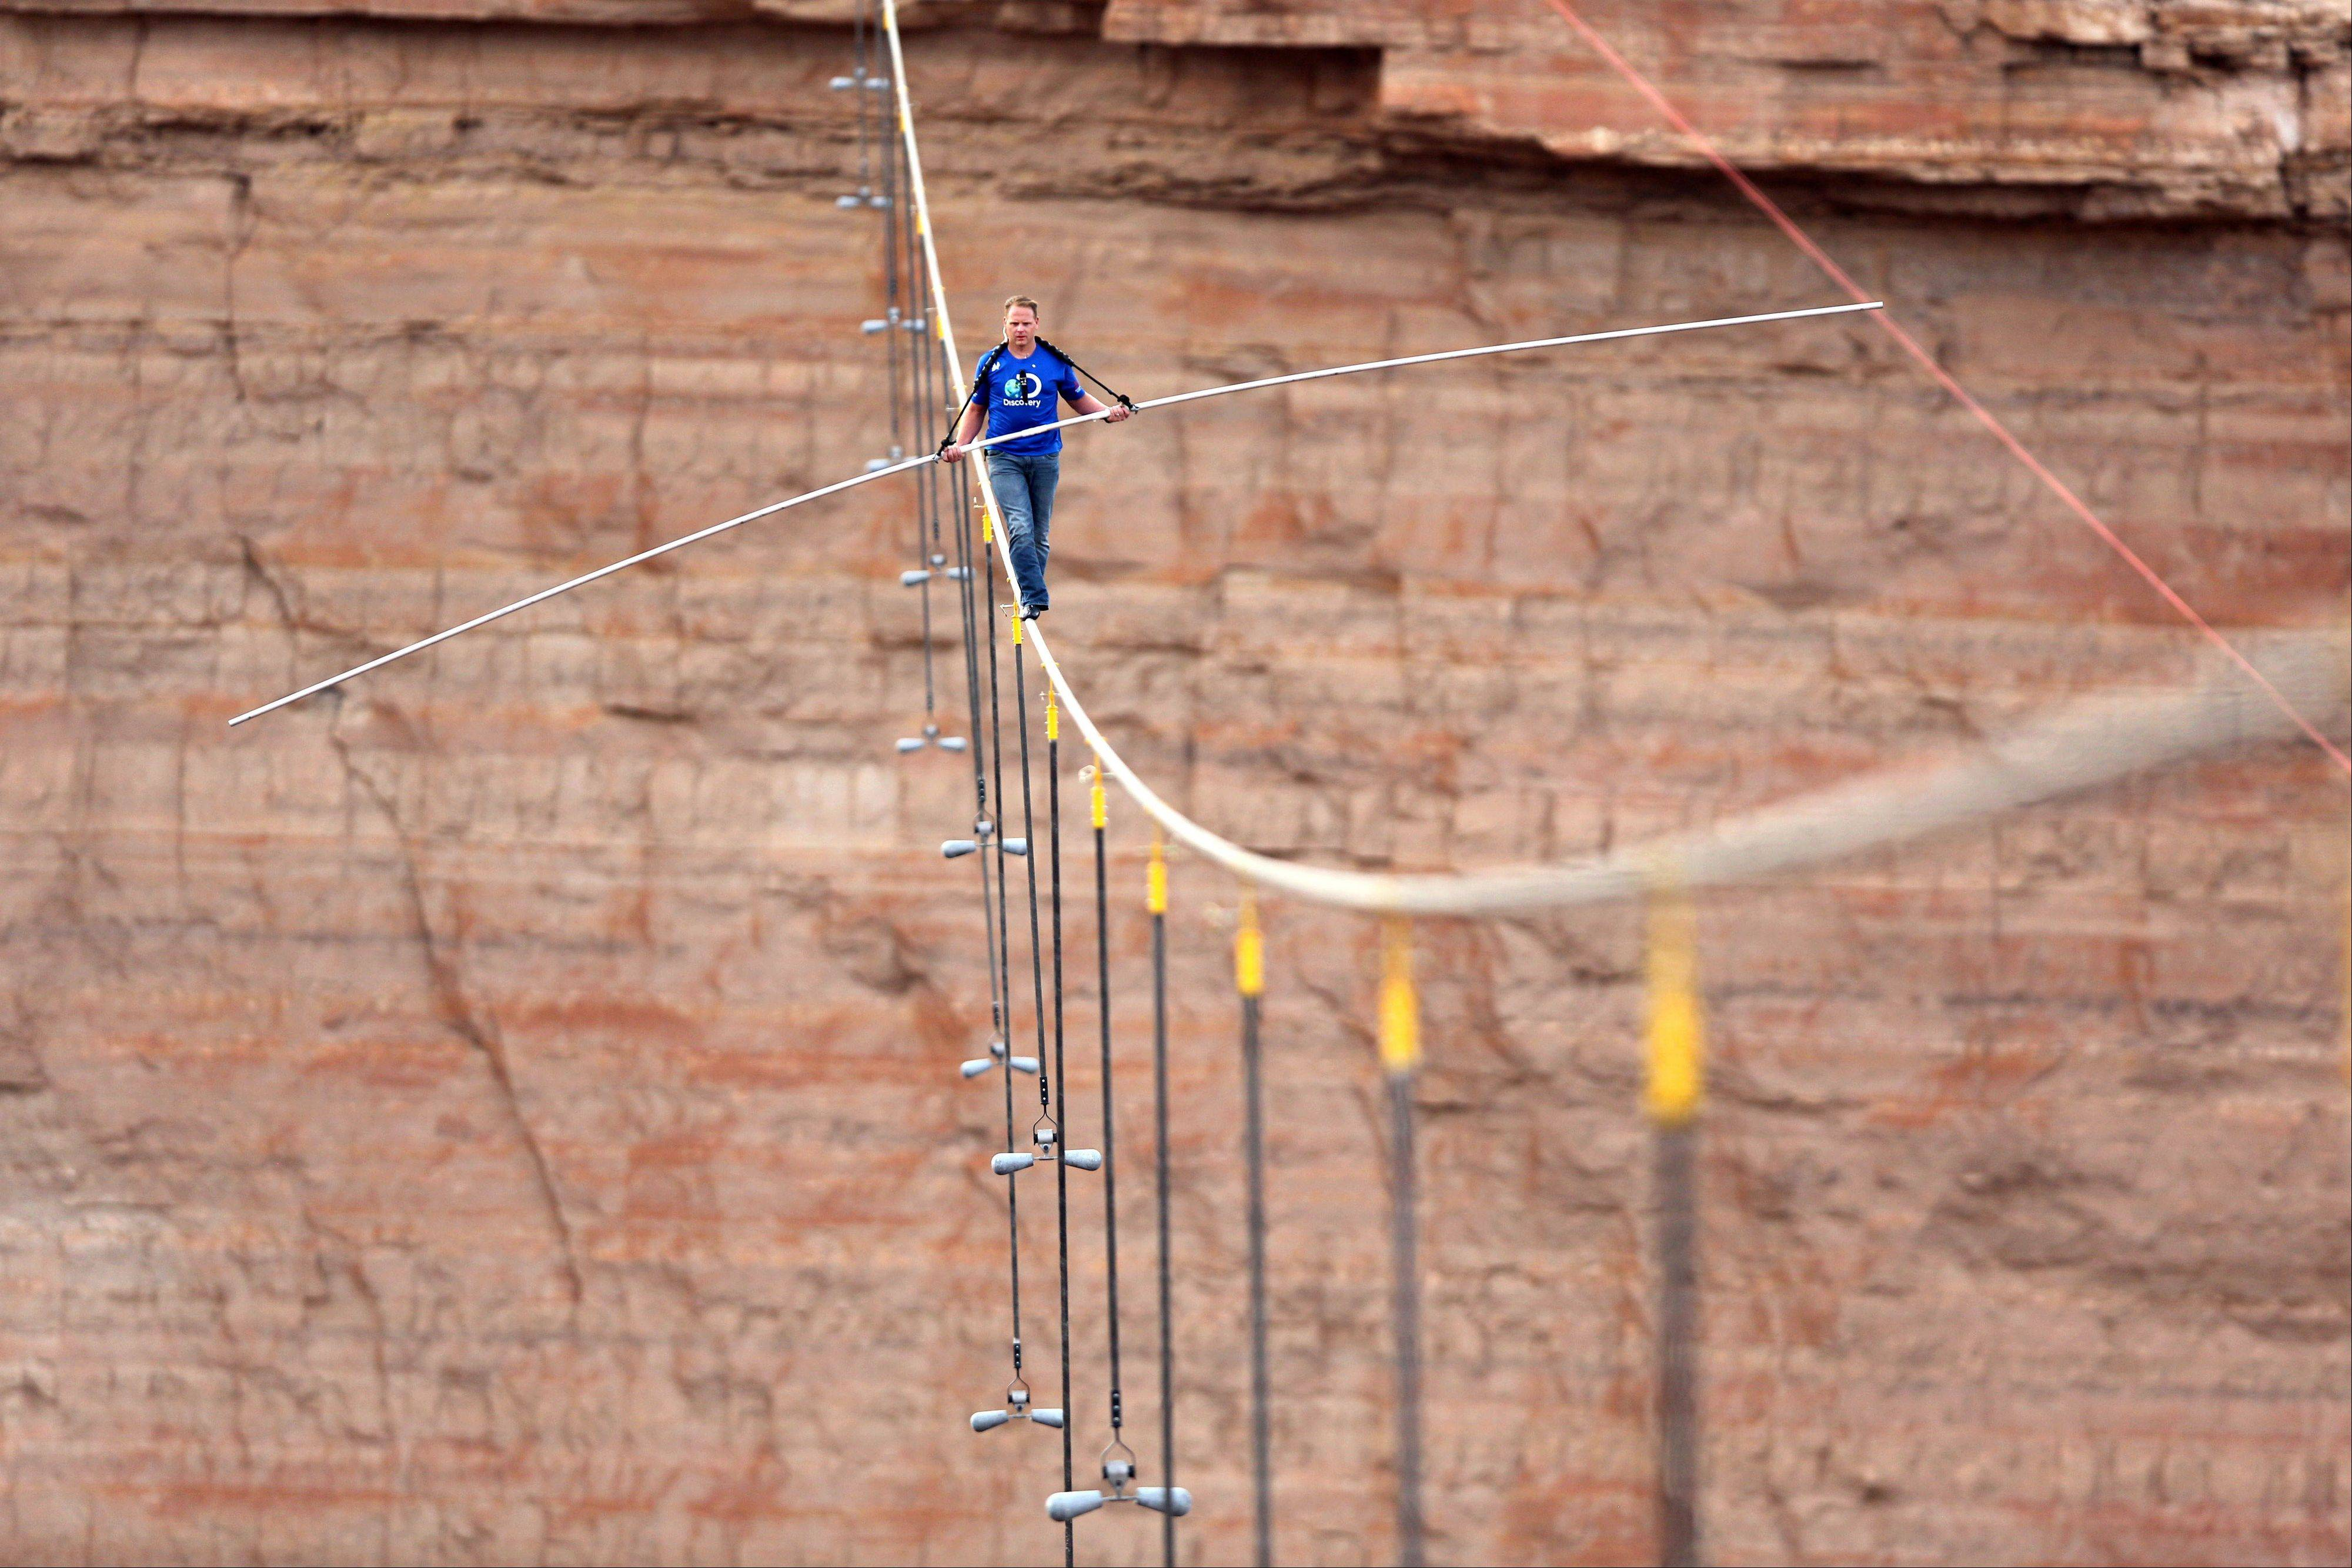 In this photo provided by the Discovery Channel, aerialist Nik Wallenda walks a 2-inch-thick steel cable taking him a quarter mile over the Little Colorado River Gorge, Ariz. on Sunday, June 23, 2013. The daredevil successfully traversed the tightrope strung 1,500 feet above the chasm near the Grand Canyon in just more than 22 minutes, pausing and crouching twice as winds whipped around him and the cable swayed.